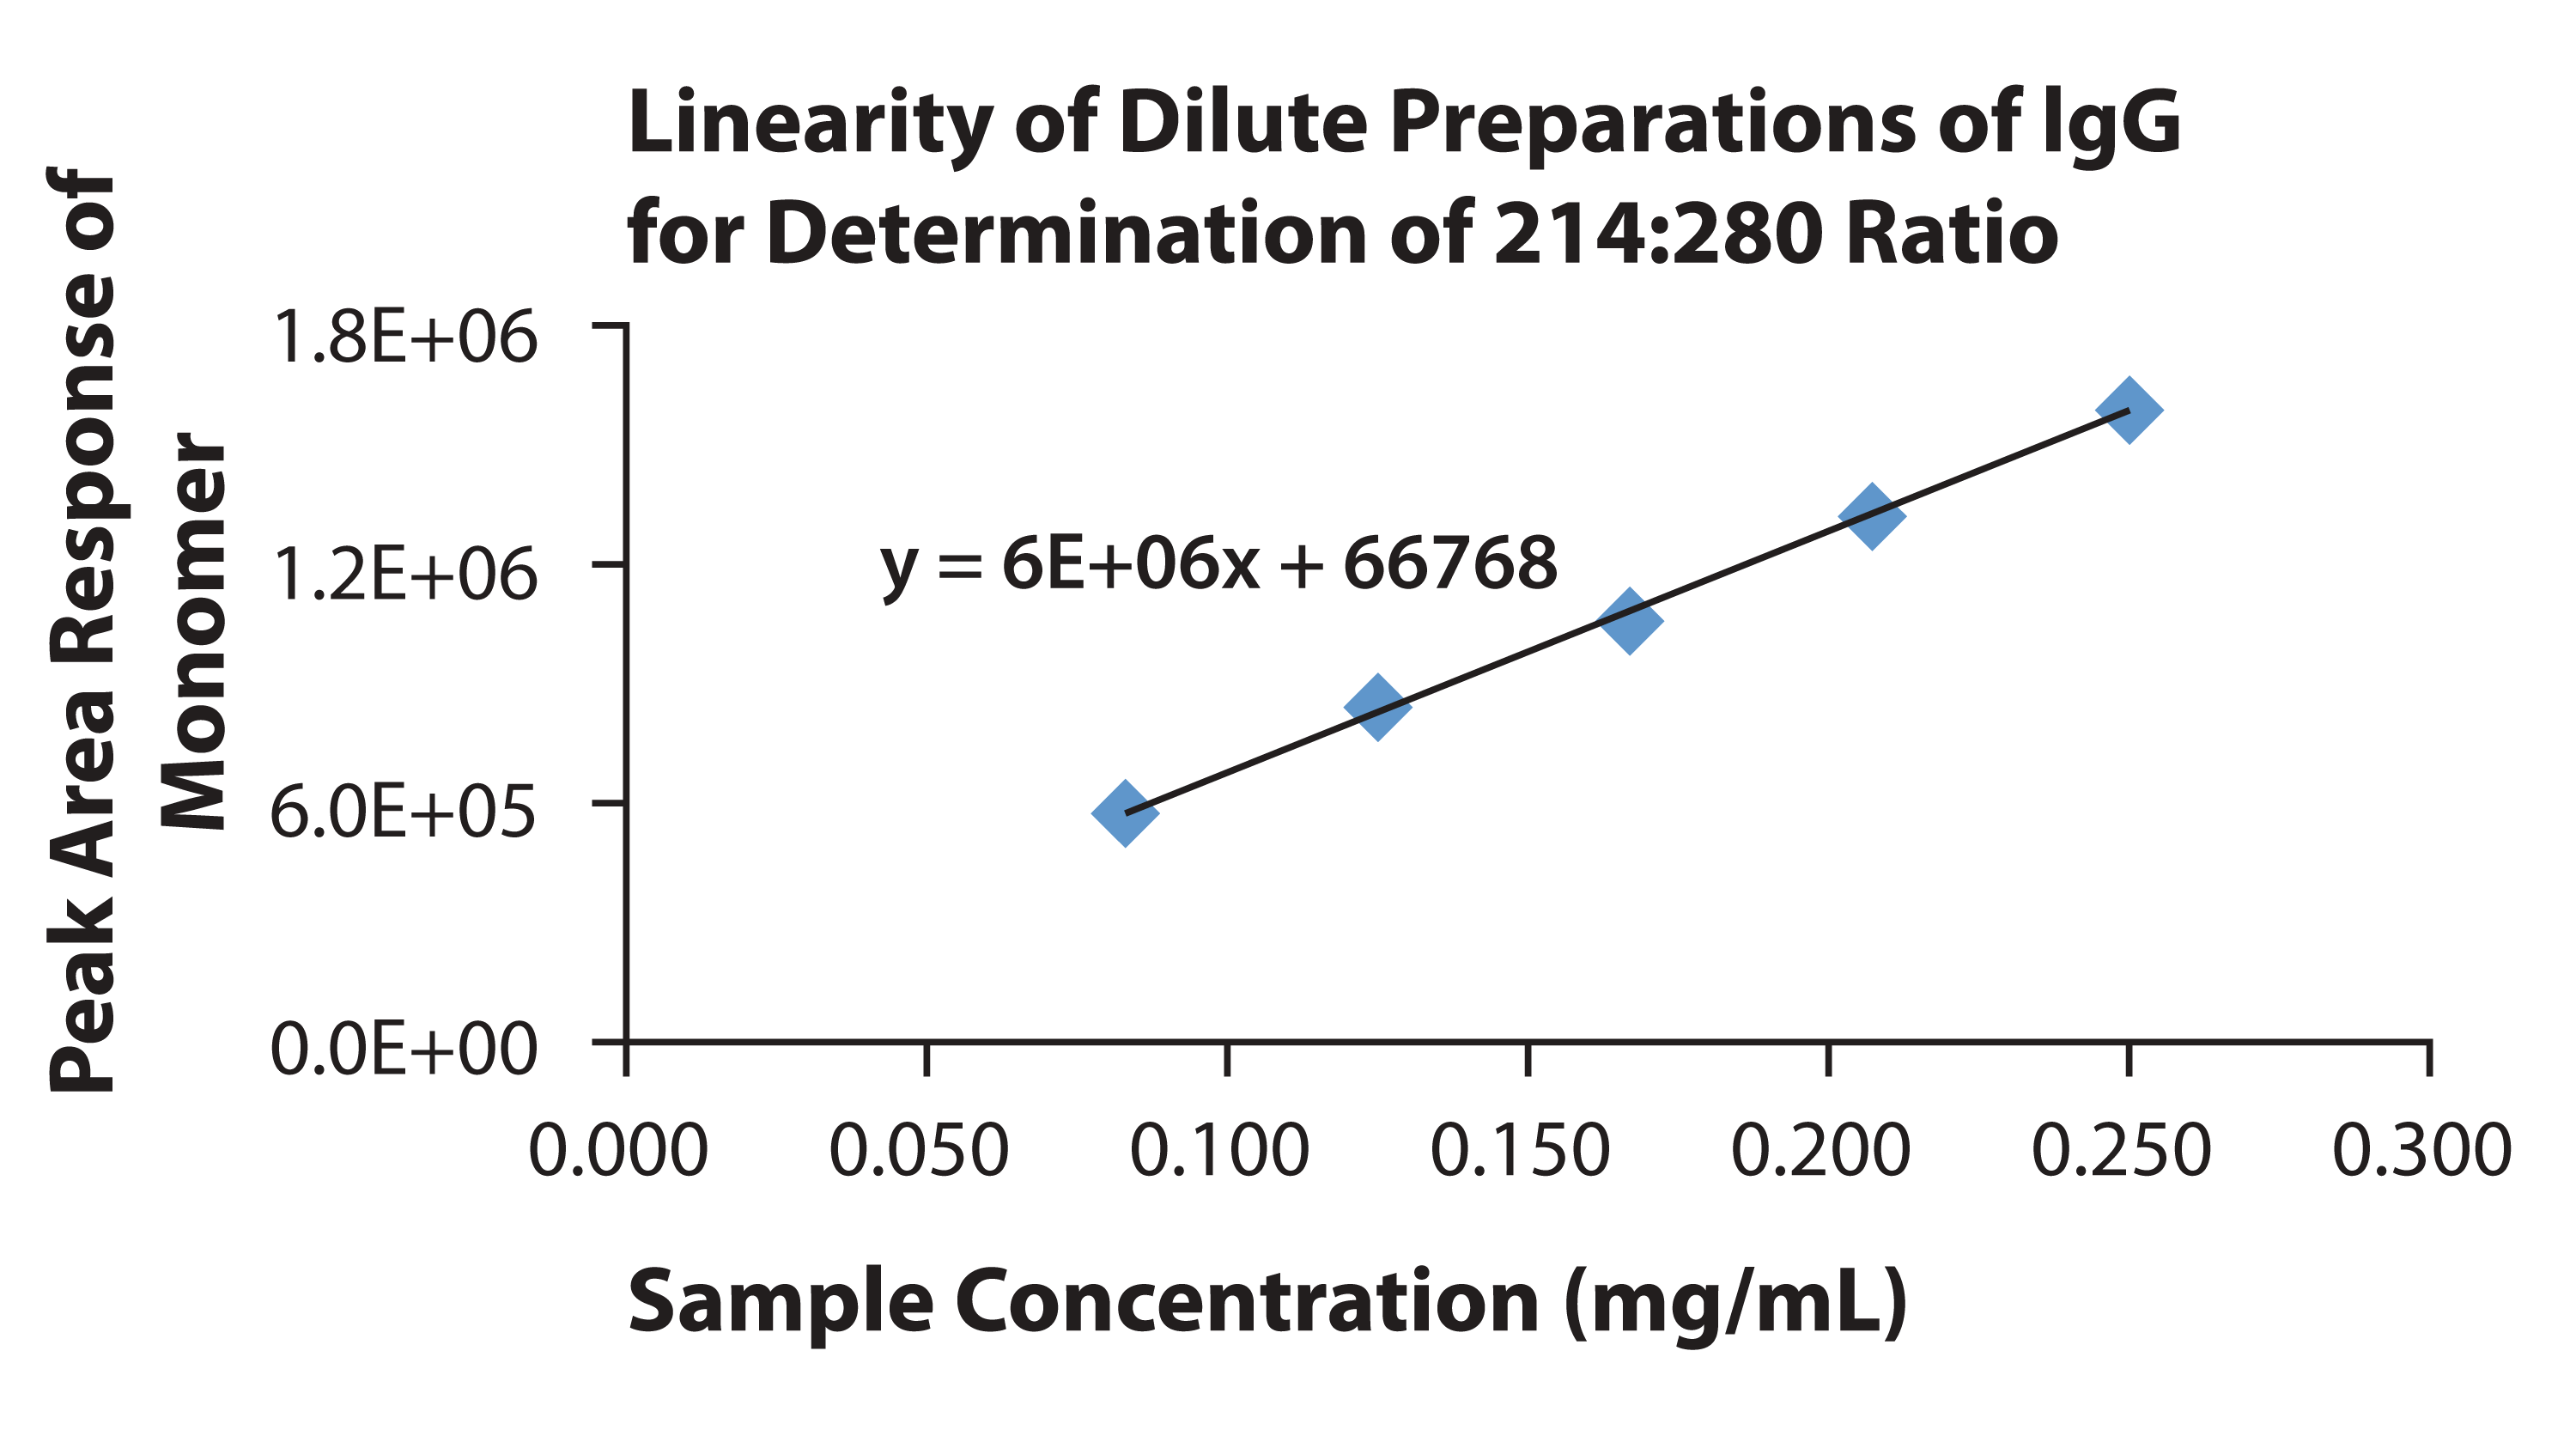 Figure 1. Linearity of Dilute Preparations of IgG Monomer for Determination of 214:280 Ratio Procedure